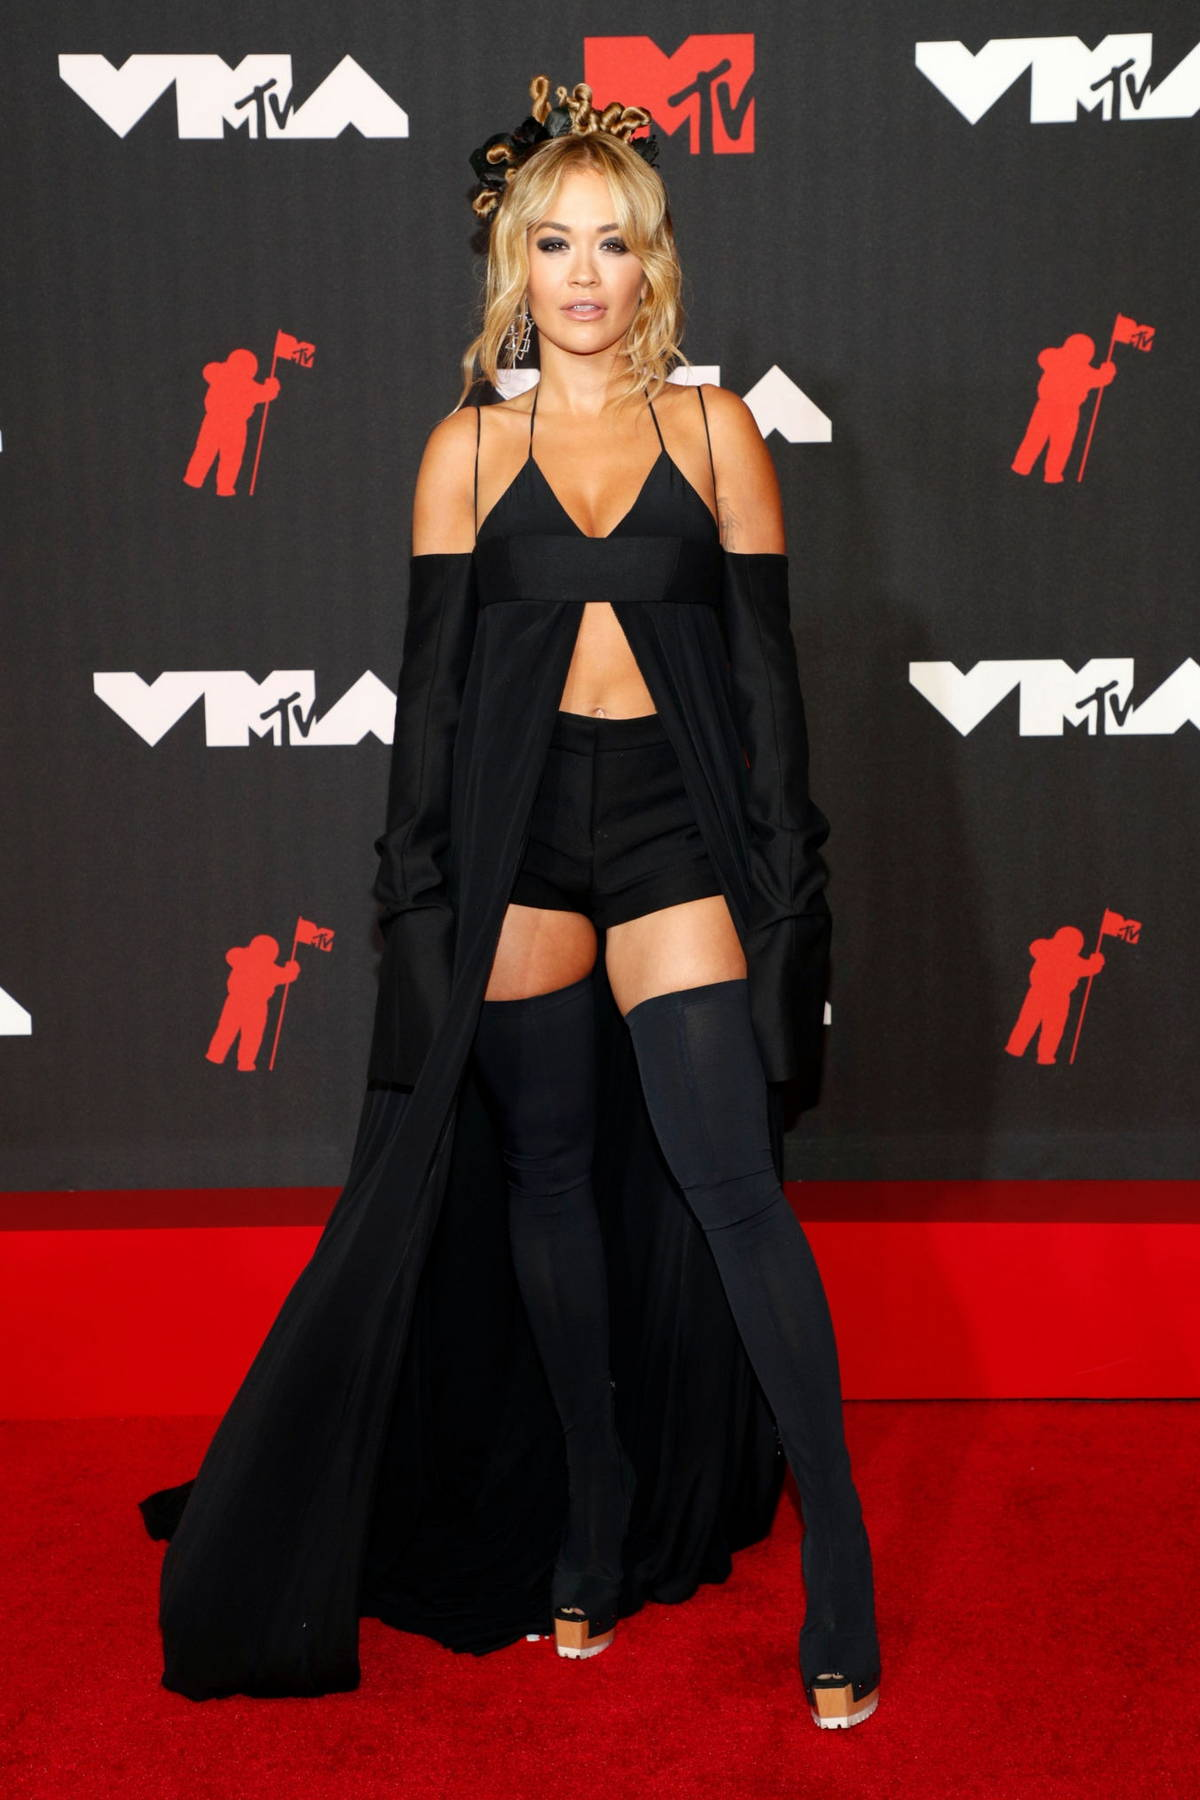 Rita Ora attends the 2021 MTV Video Music Awards at Barclays Center in Brooklyn, New York City